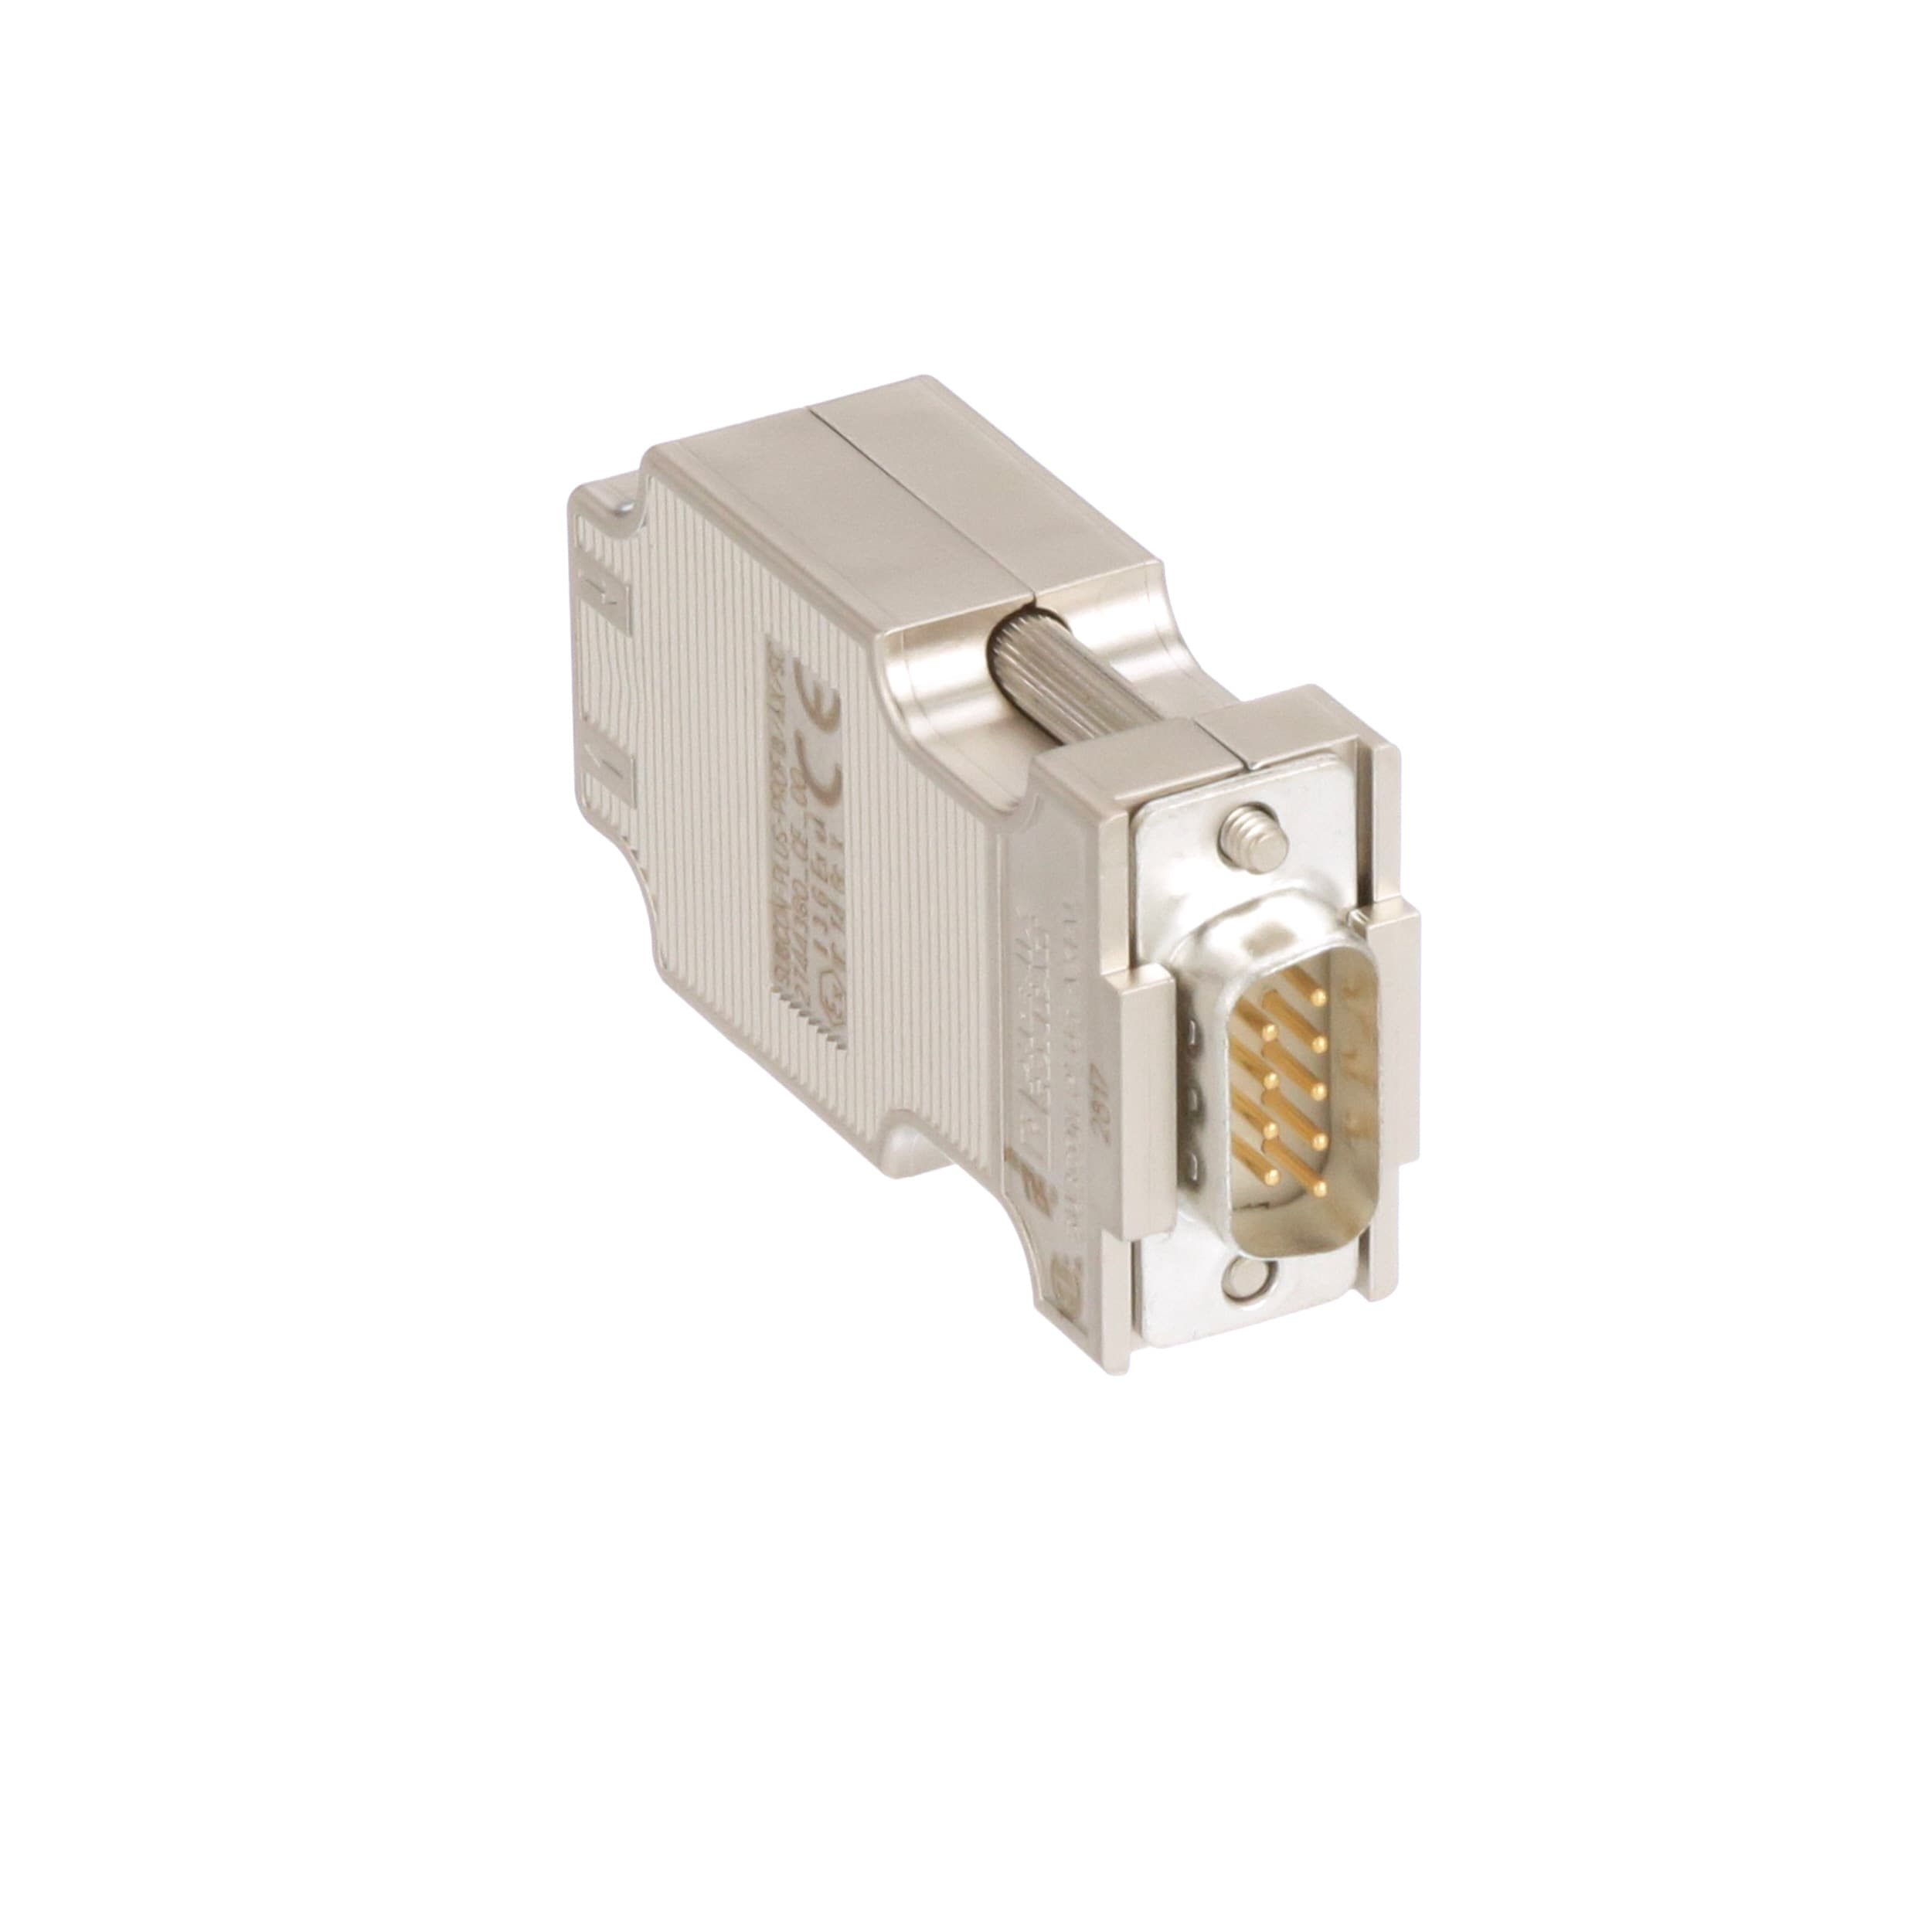 DB Pack of 5 D Sub Connector Housing 180-044-273L020 180-044-273L020 High Density D Sub 44 Positions Receptacle Steel Body 180 Series